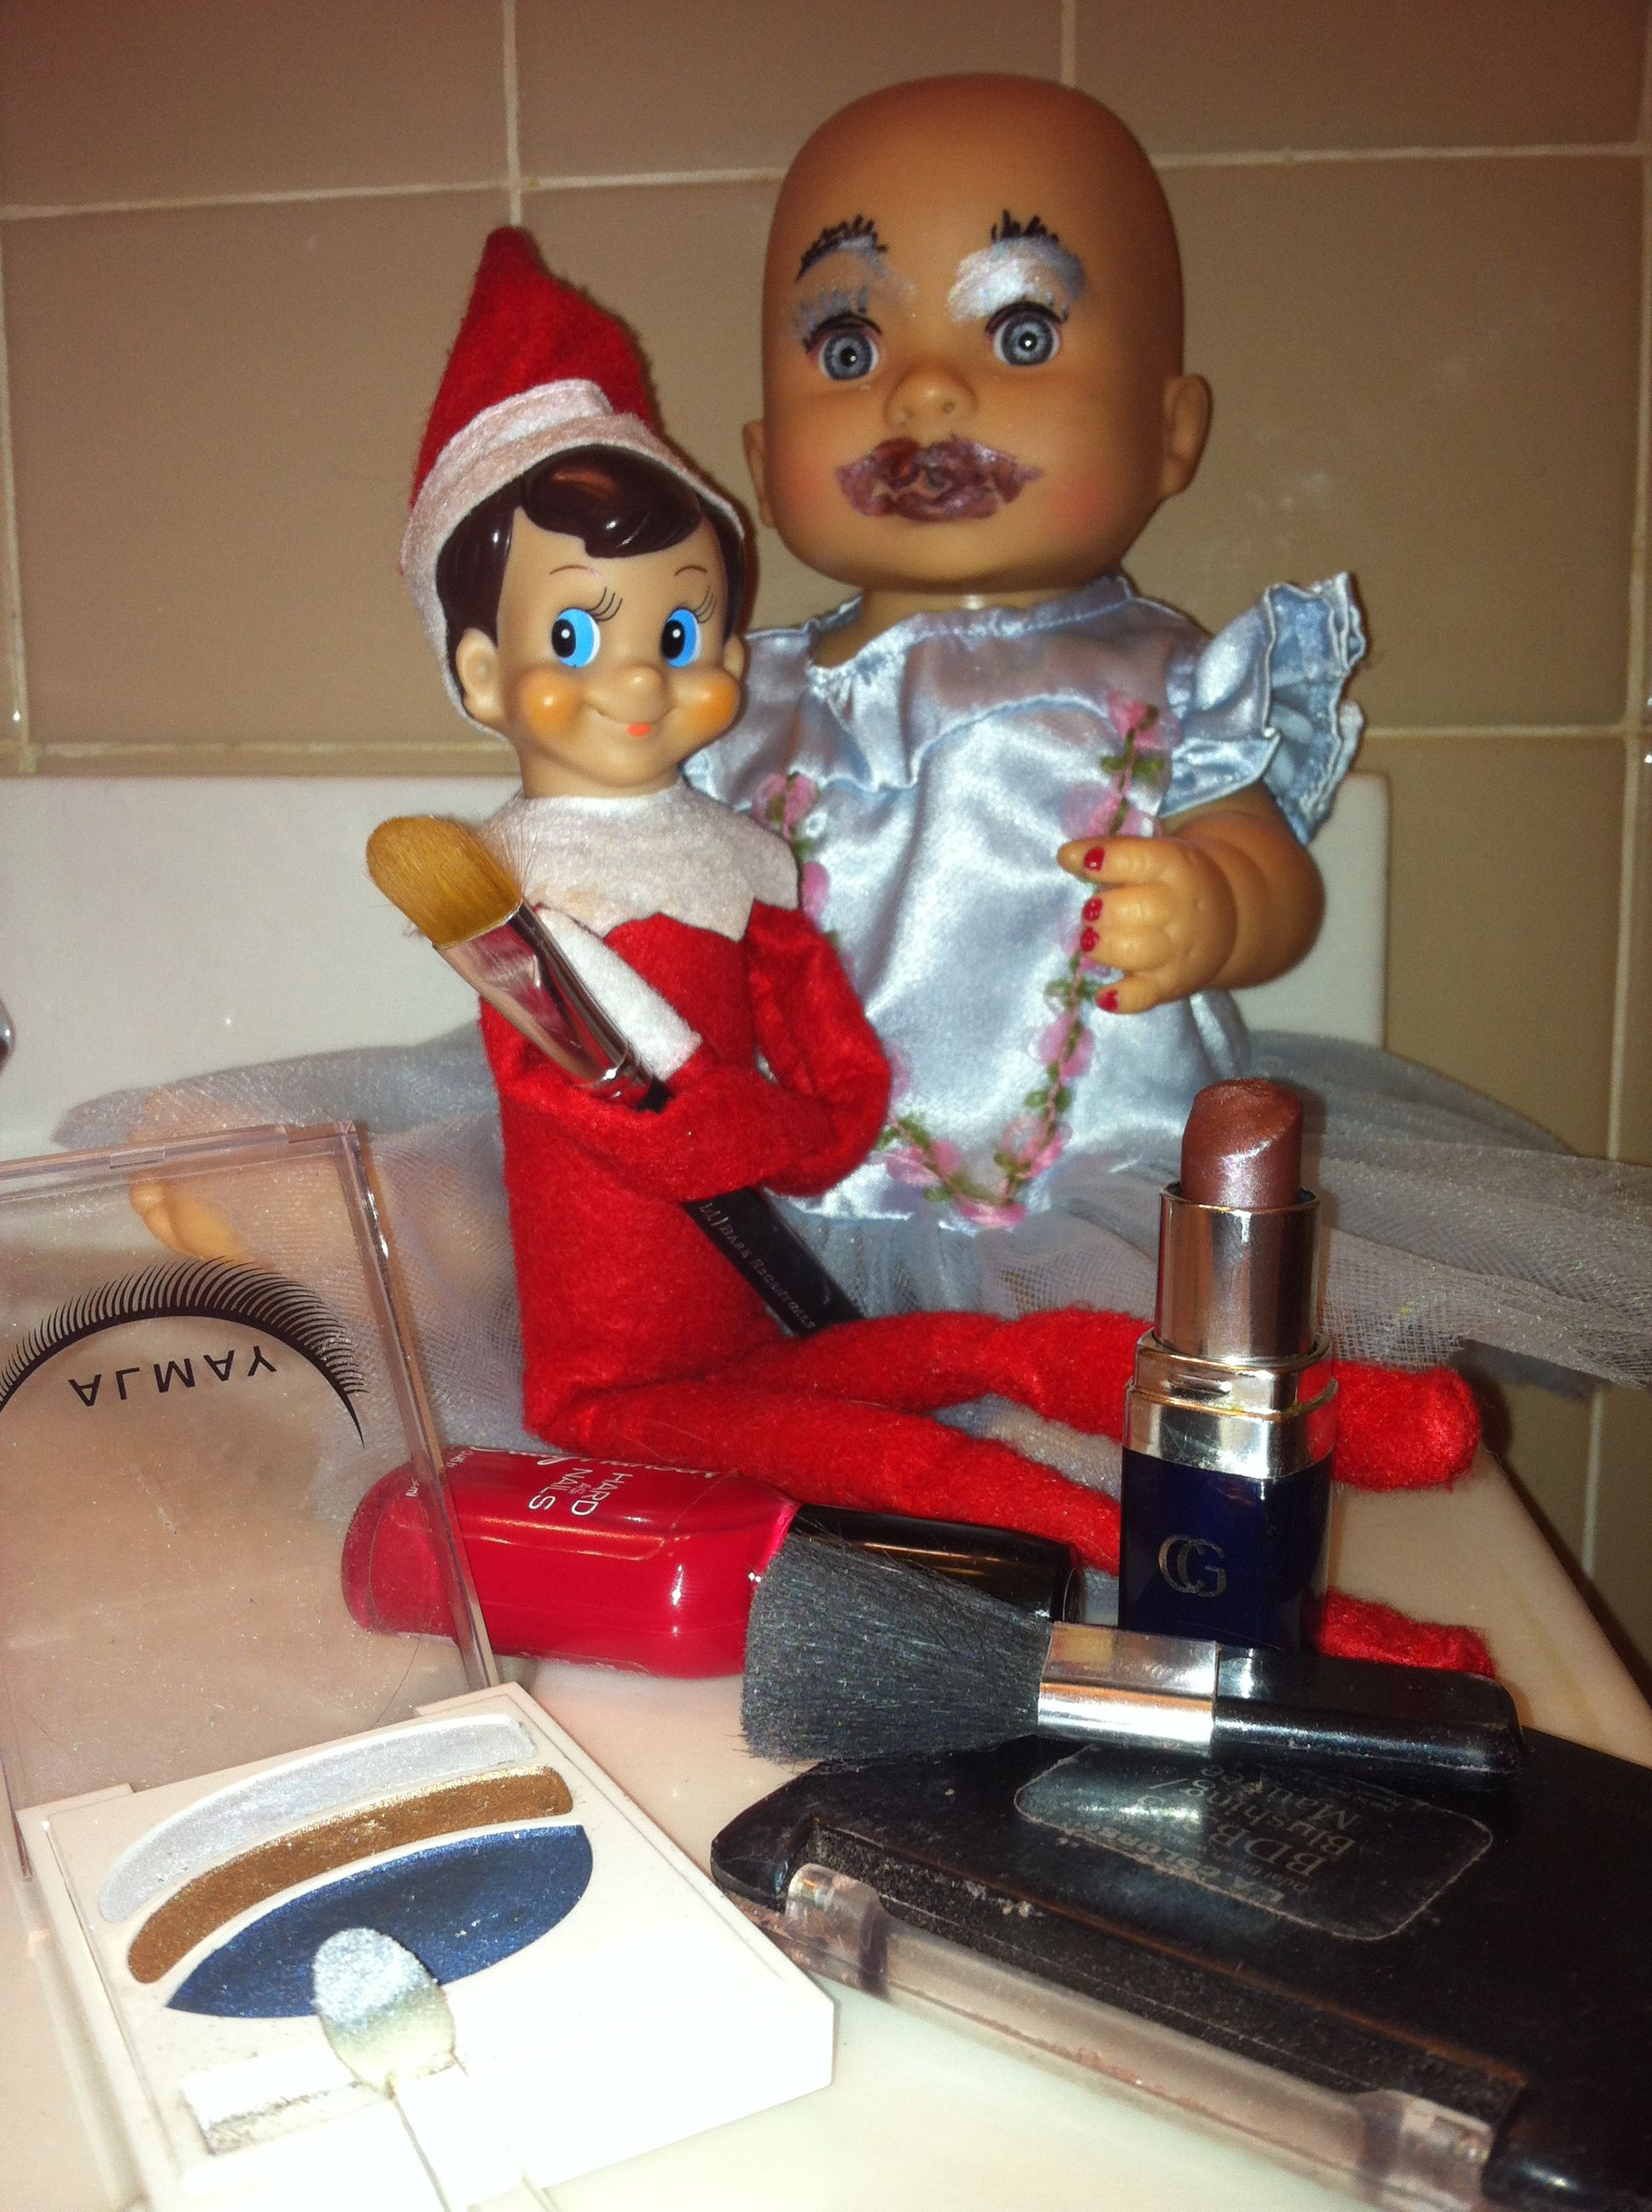 Well I certainly don't want Elfie to do my make up!